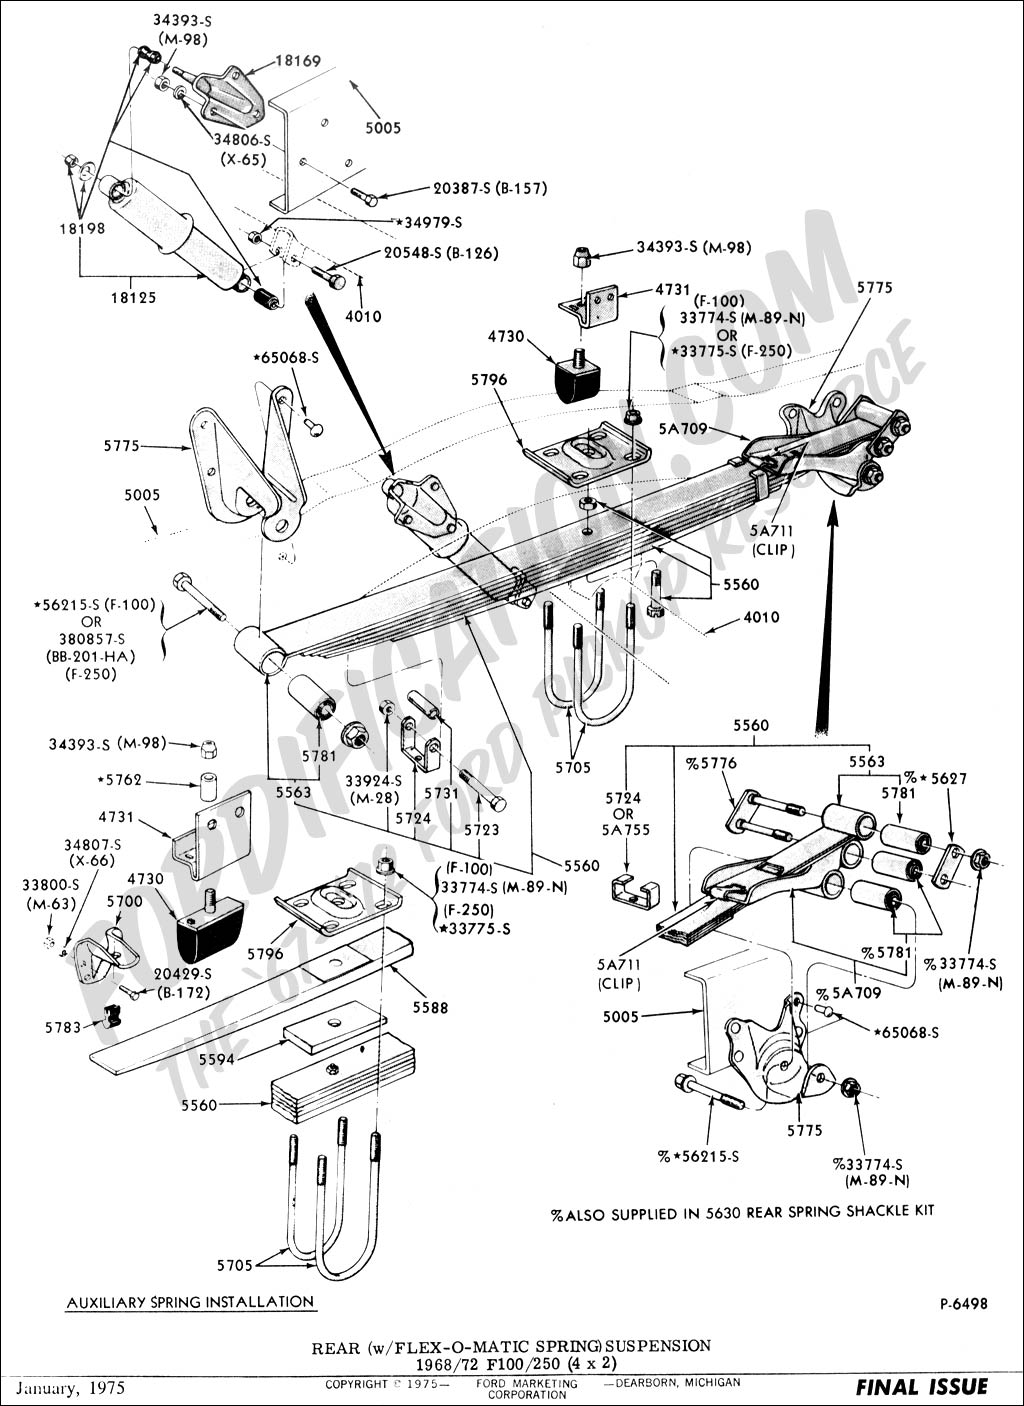 susp_rearf100 wflex flex i o schematic the wiring diagram readingrat net ford flex wiring diagram at gsmportal.co